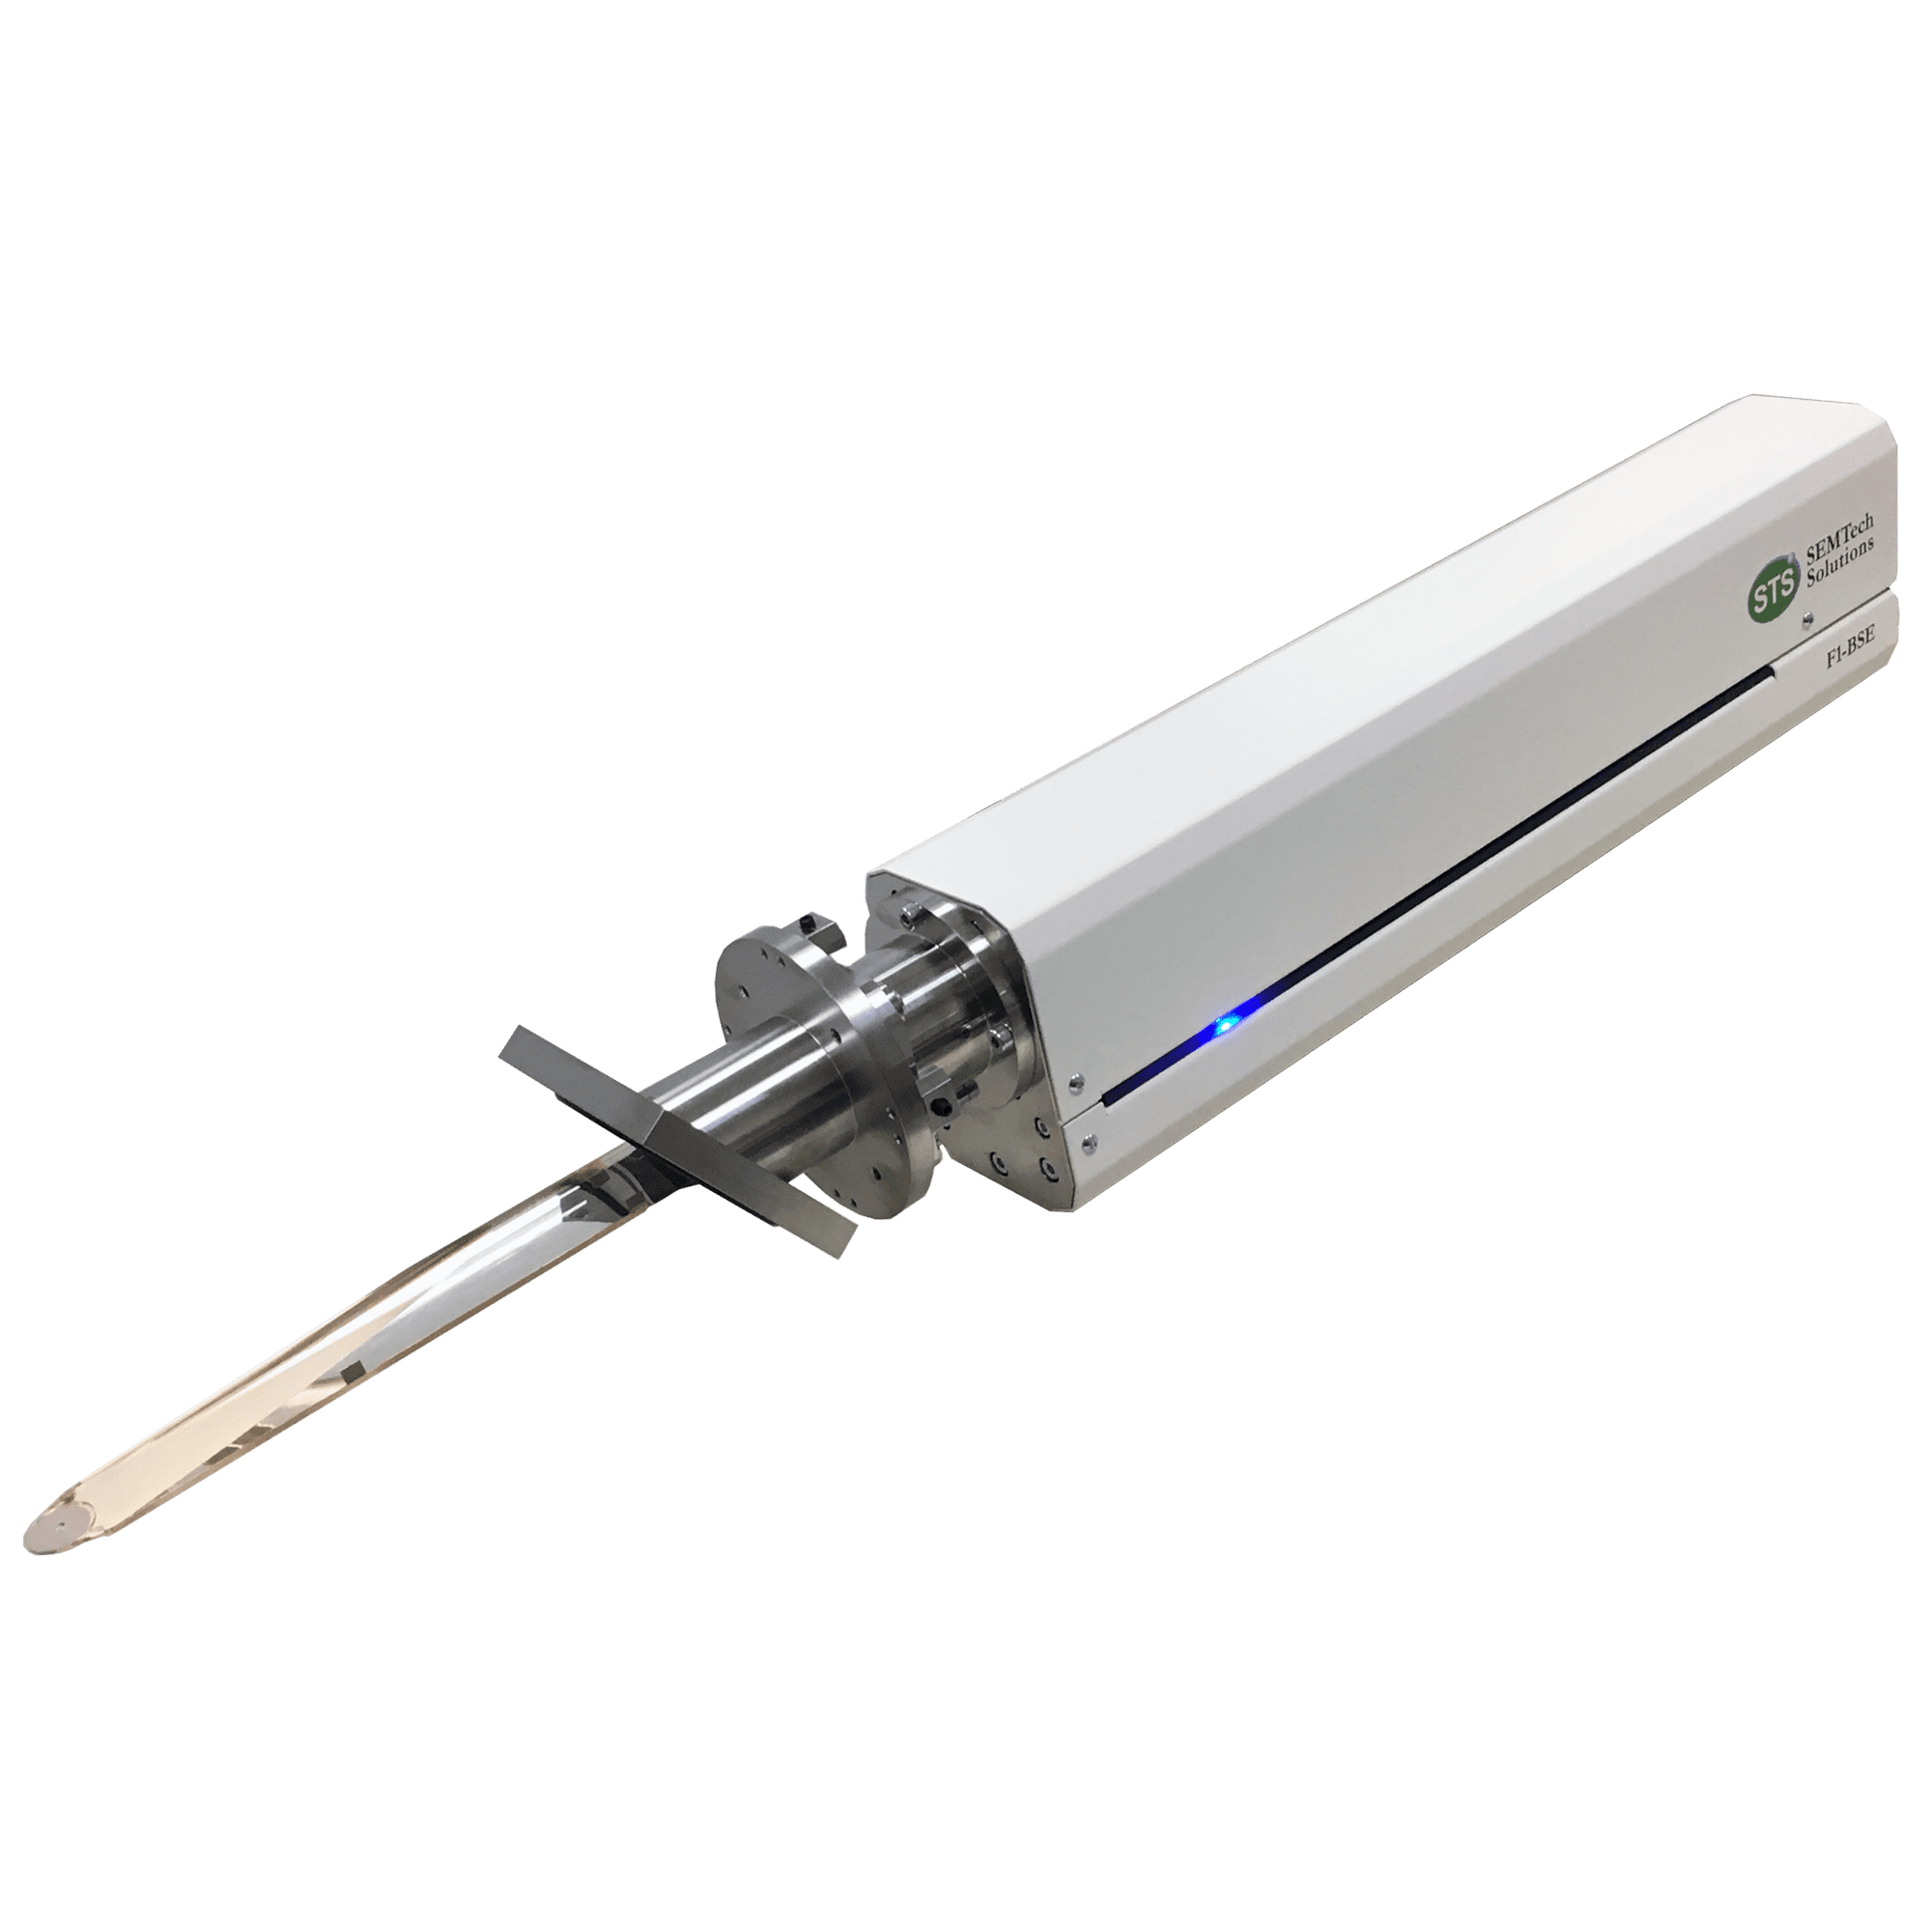 SEM Accessory - STS F1 Motorized BSE Detector